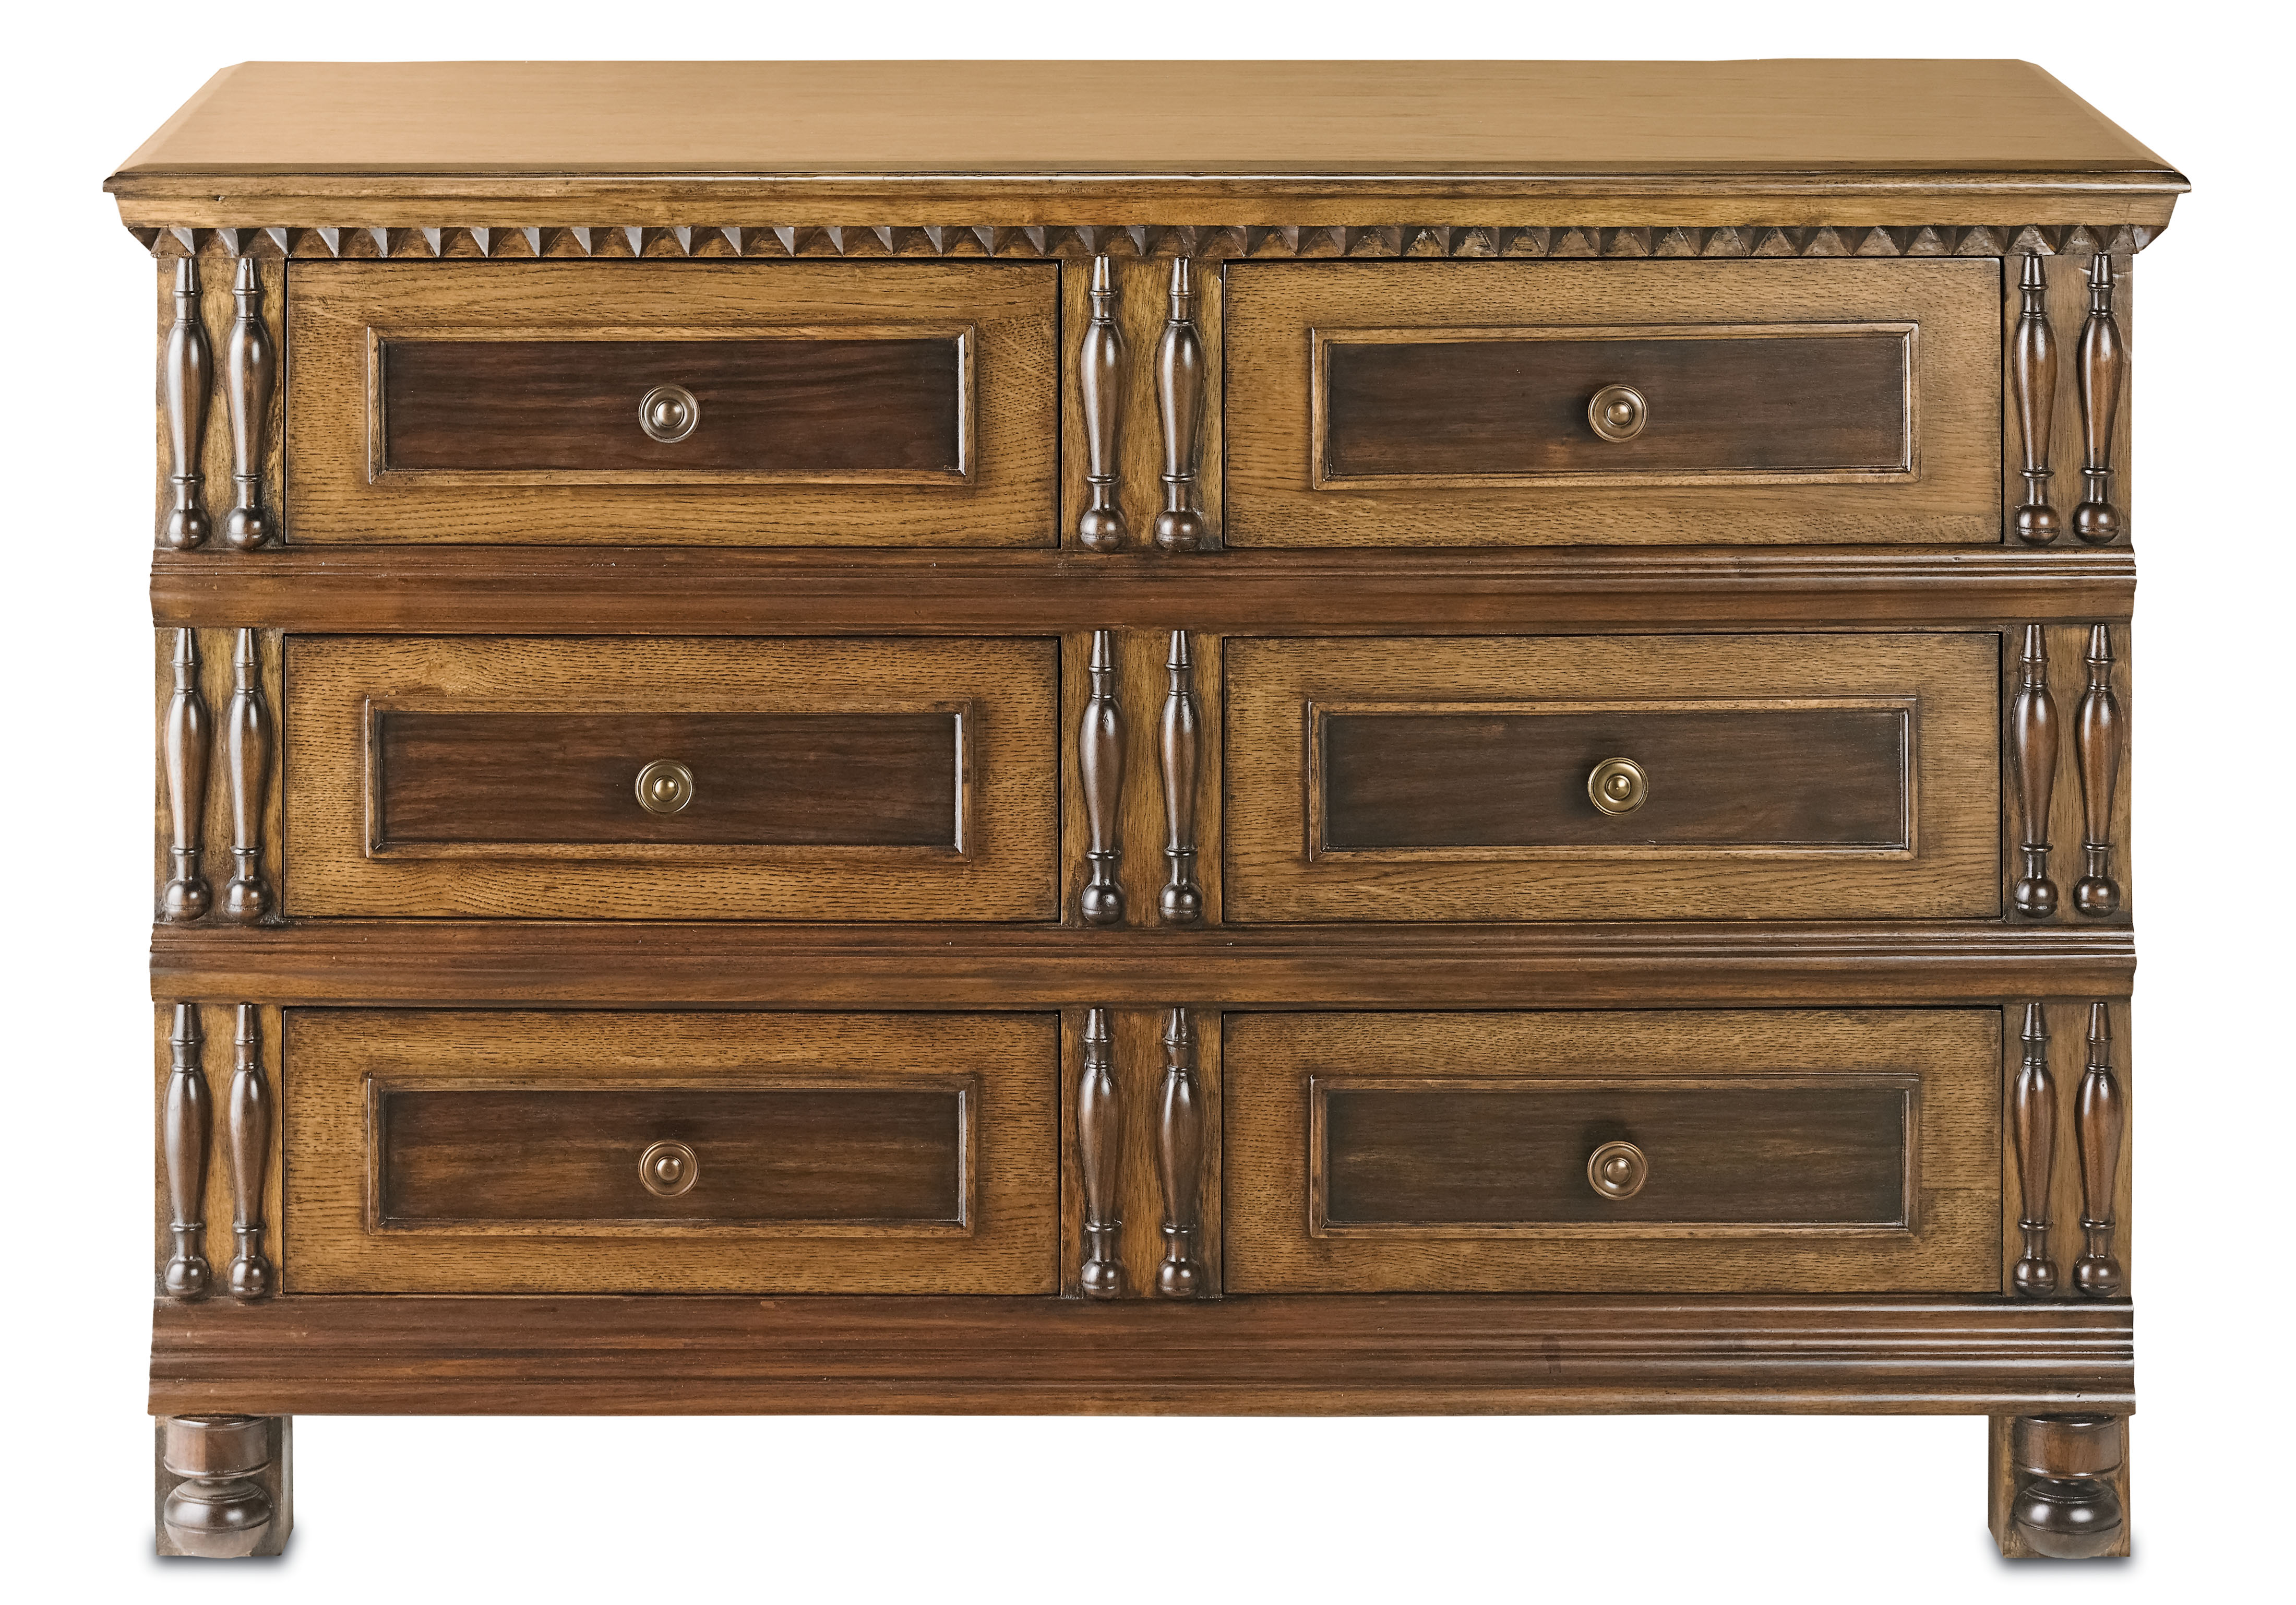 The design of the Tappahannock chest was inspired by the Winterthur archives